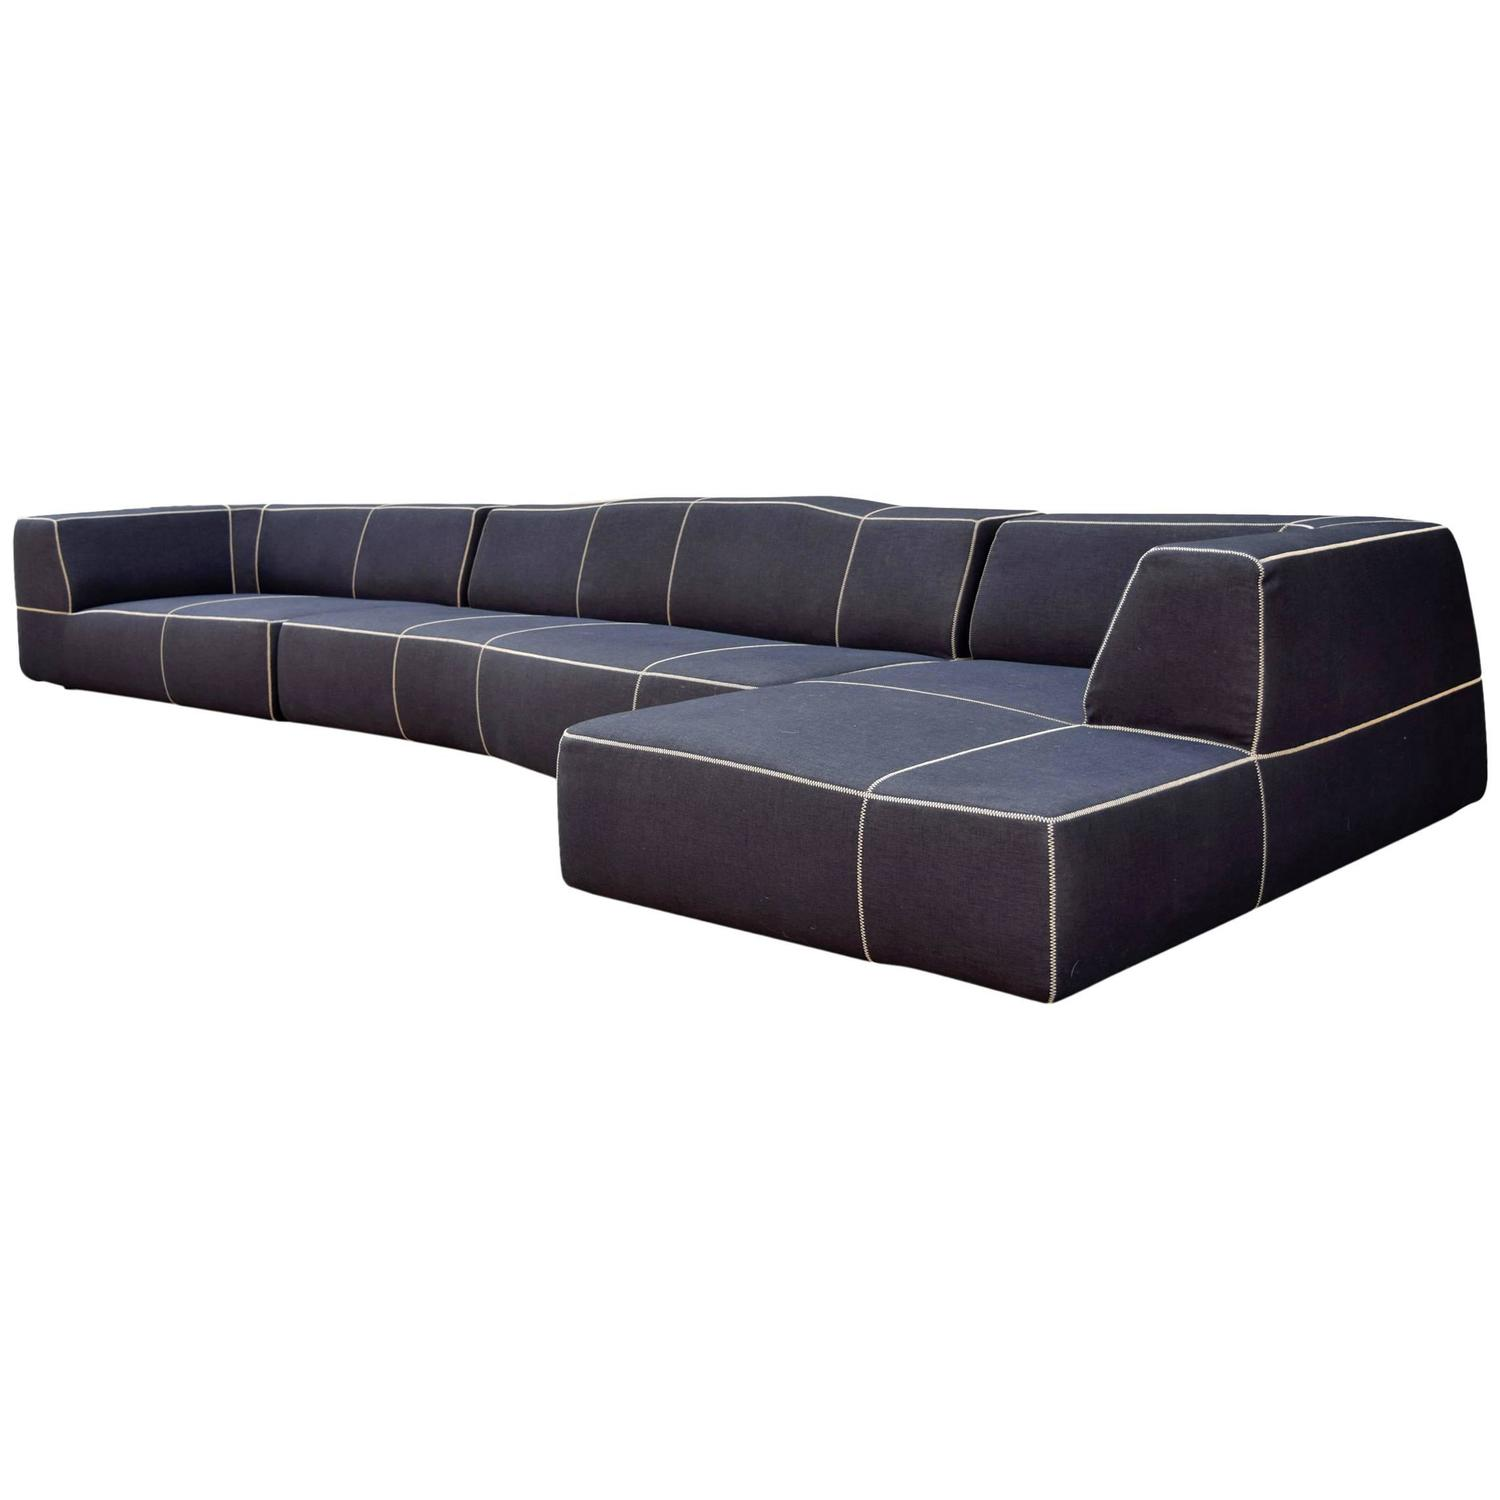 B B Italia Bend Sofa By Patricia Urquiola At 1stdibs